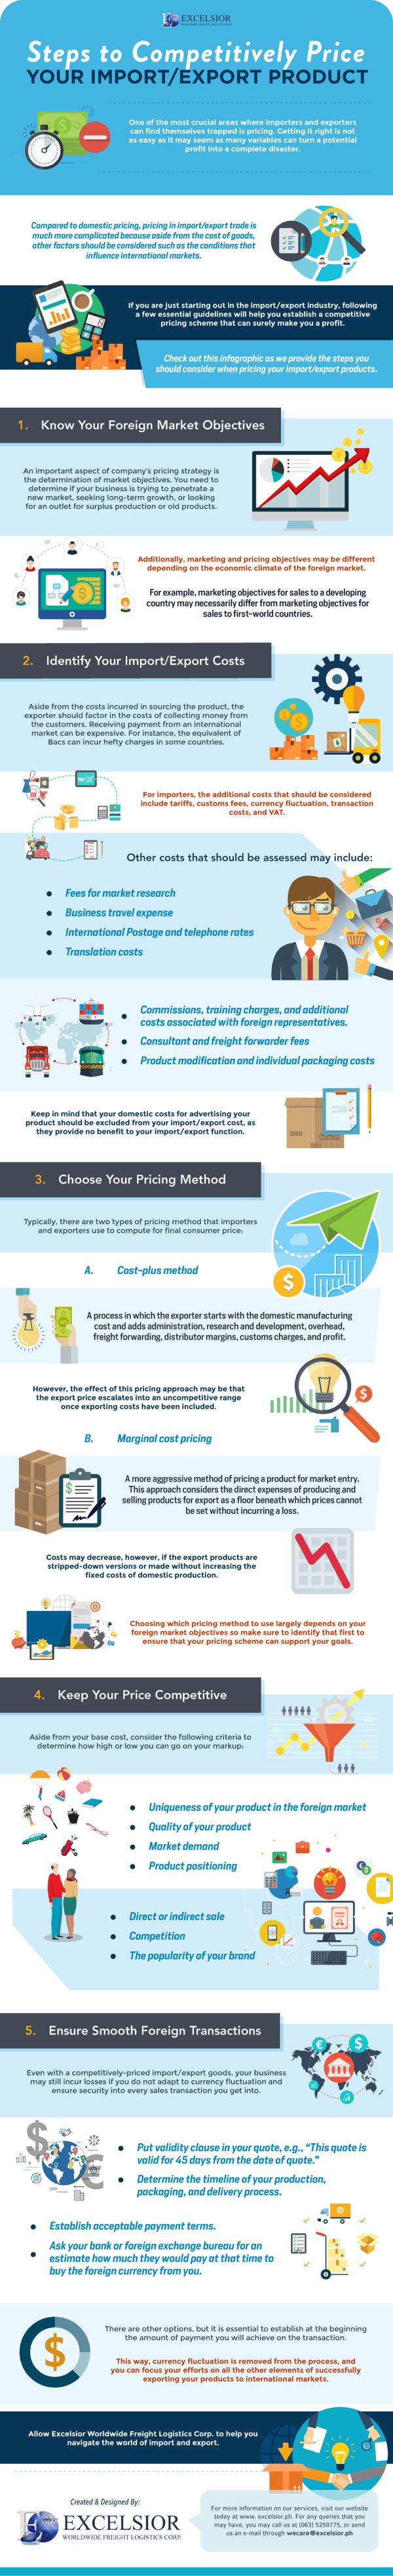 Steps to Competitively Price Your Import/Export Product 1